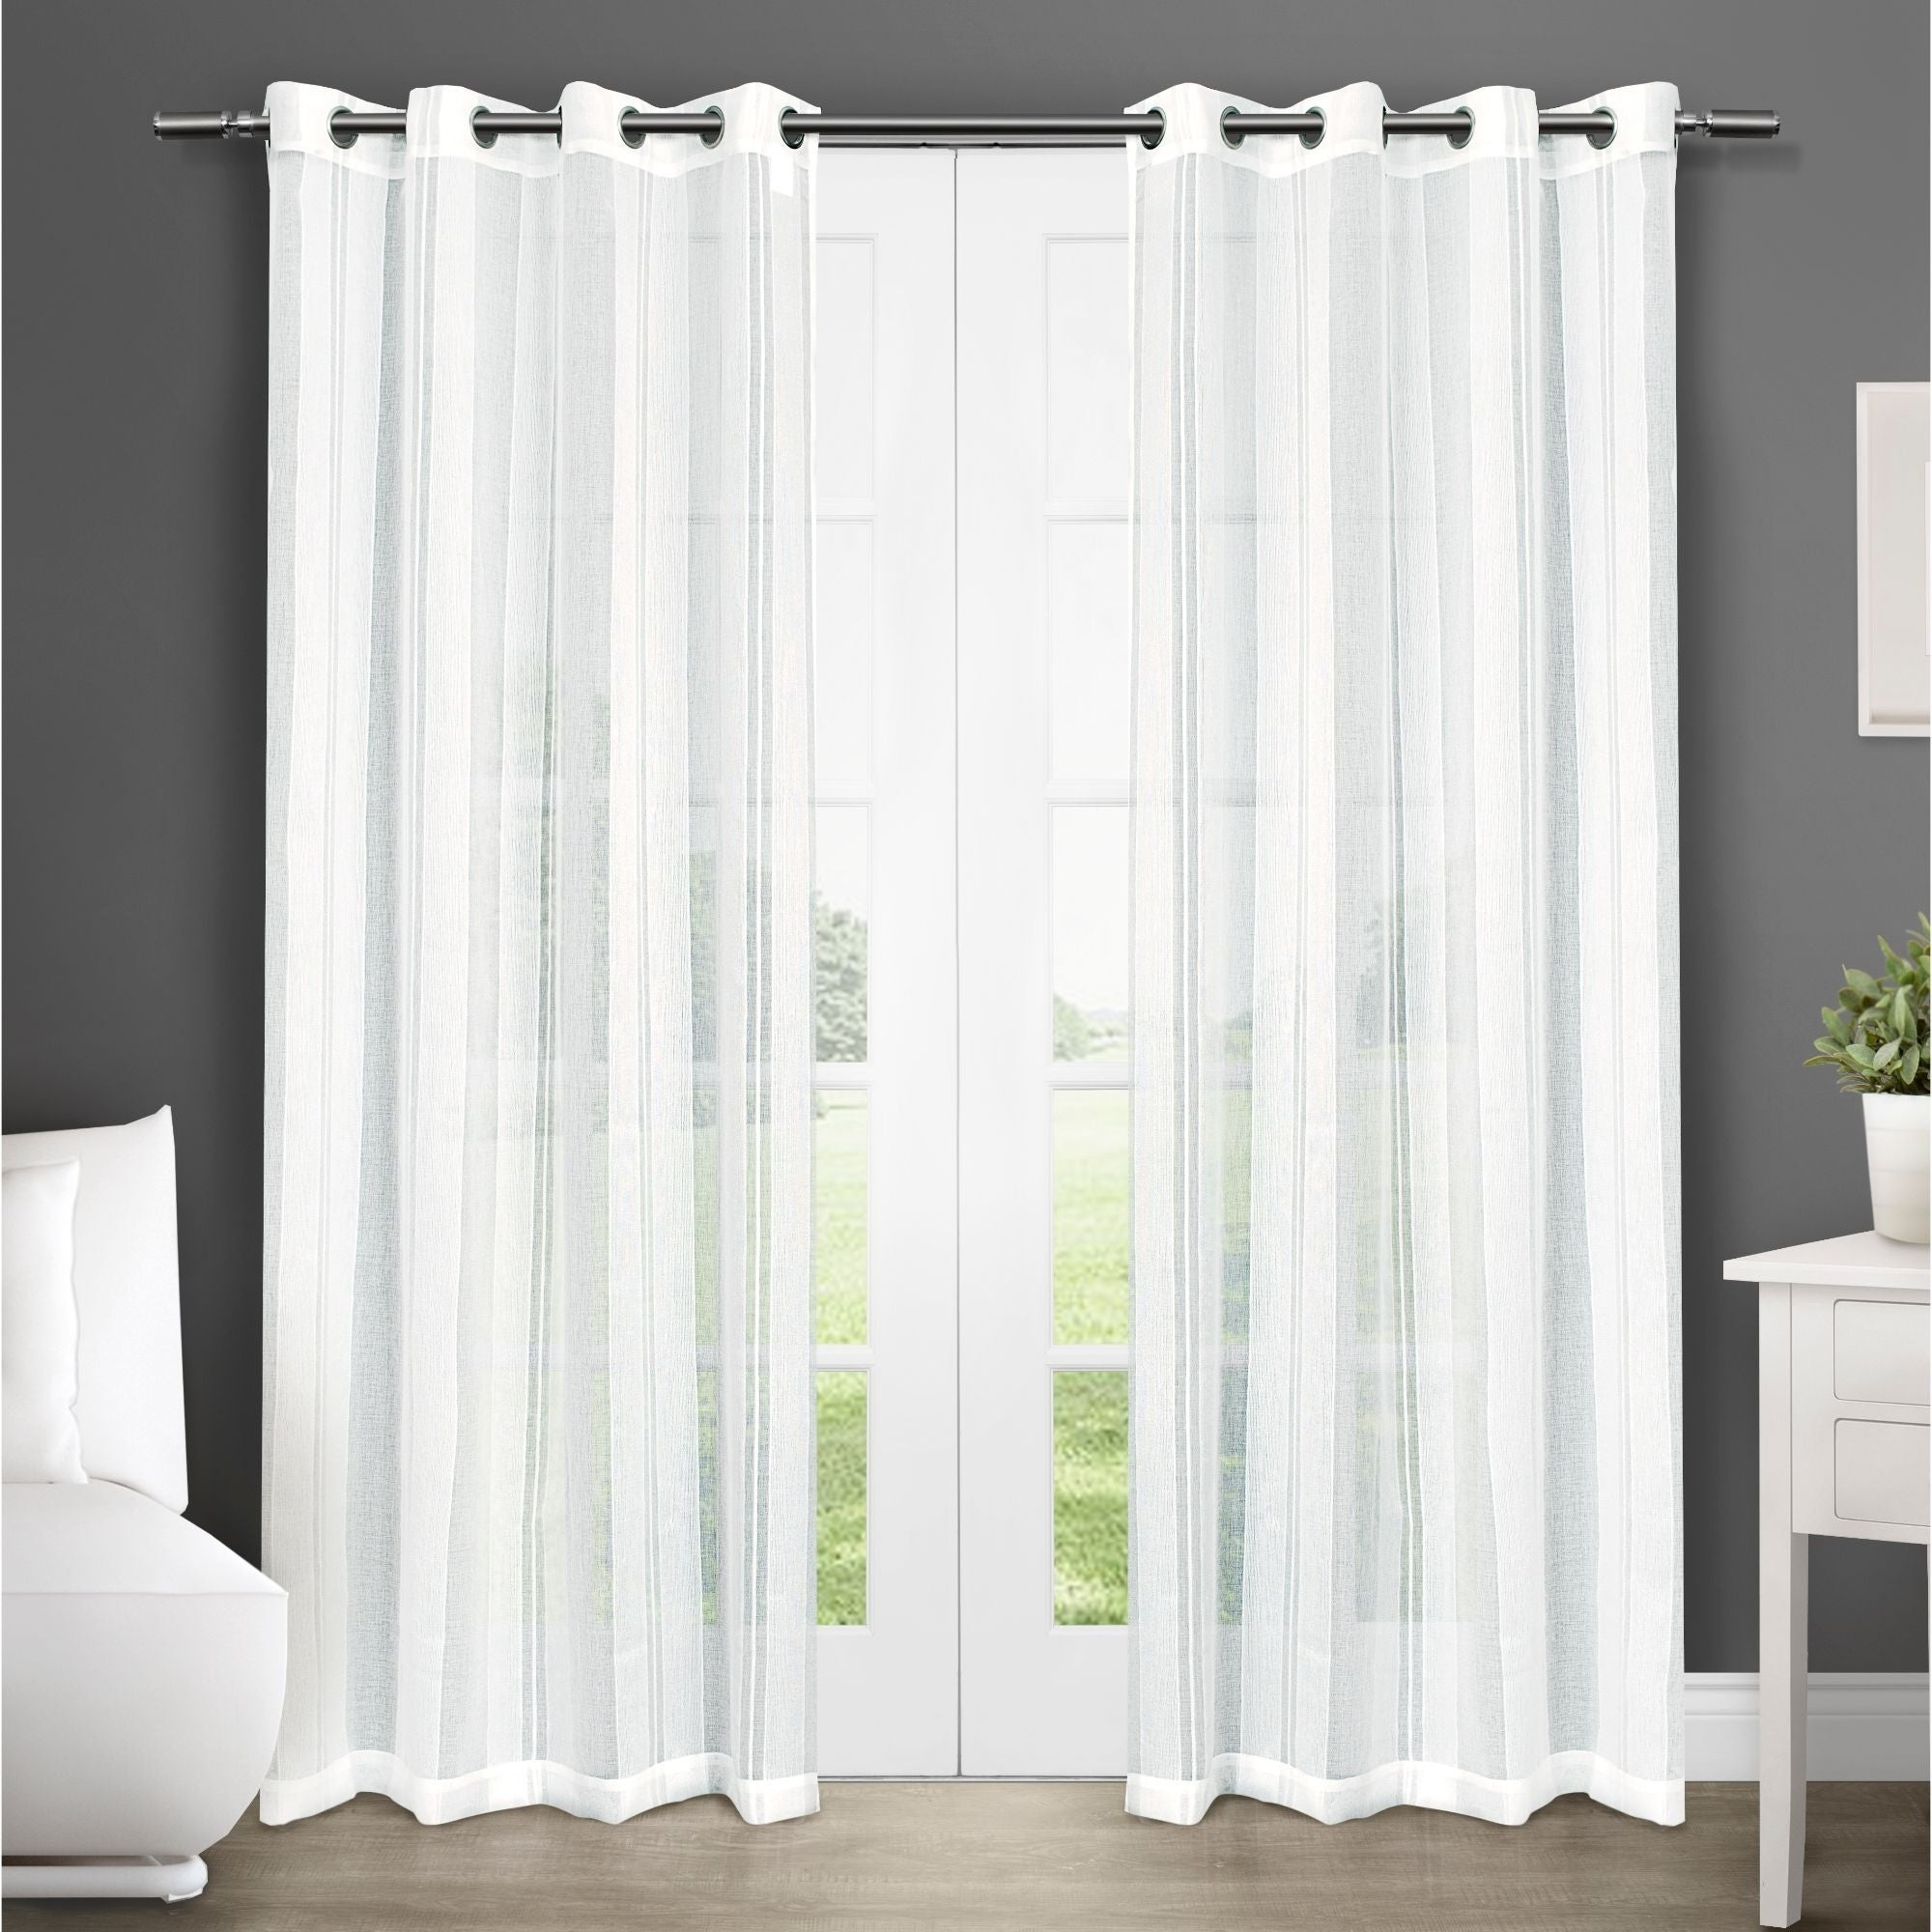 Ati Home Apollo Sheer Grommet Top Curtain Panel Pair Intended For Luxury Collection Cranston Sheer Curtain Panel Pairs (View 3 of 20)